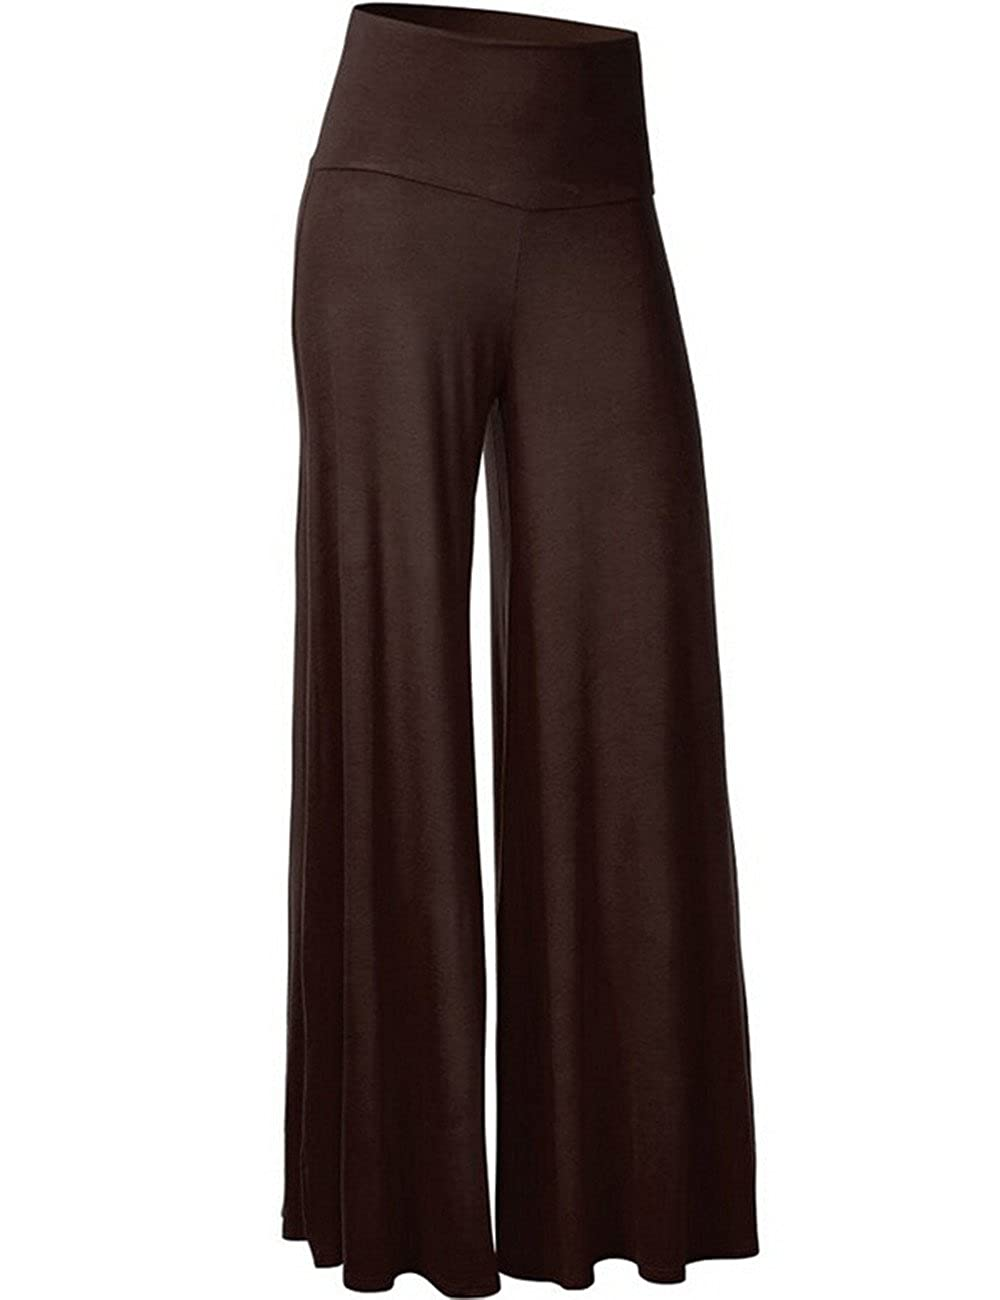 Emma Women's Yoga Gym Sport Lounge Legging Trousers Classic High Waist Wide Leg Palazzo Pants